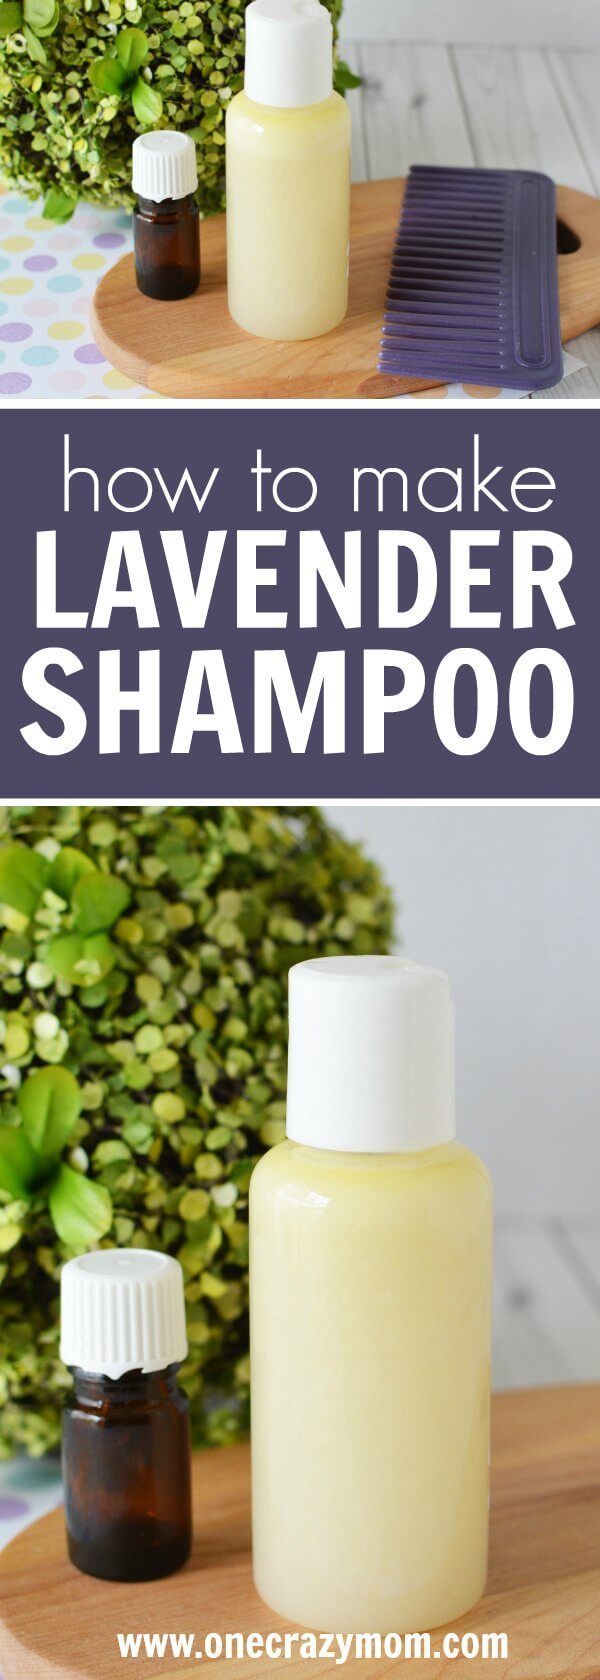 Lavender shampoo is the best natural shampoo. Learn how to make shampoo at home. Make your own shampoo that is so quick and easy!